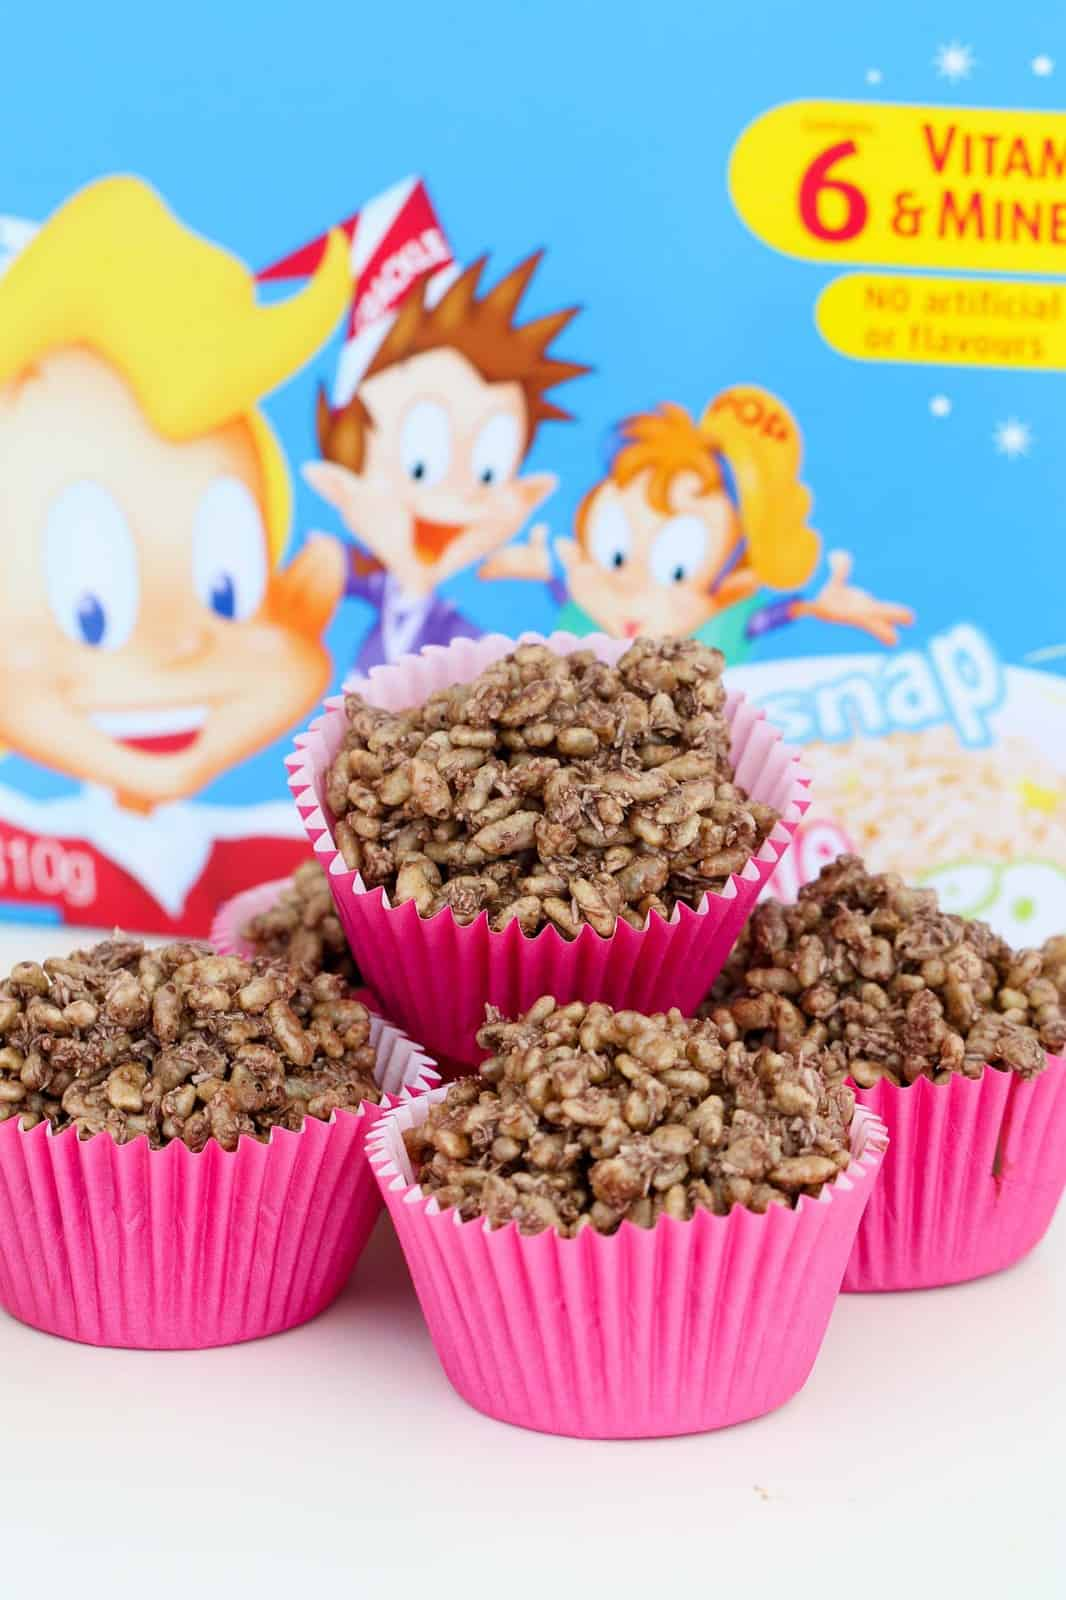 A pile of chocolate crackles in pink cases, with party decorations behind.